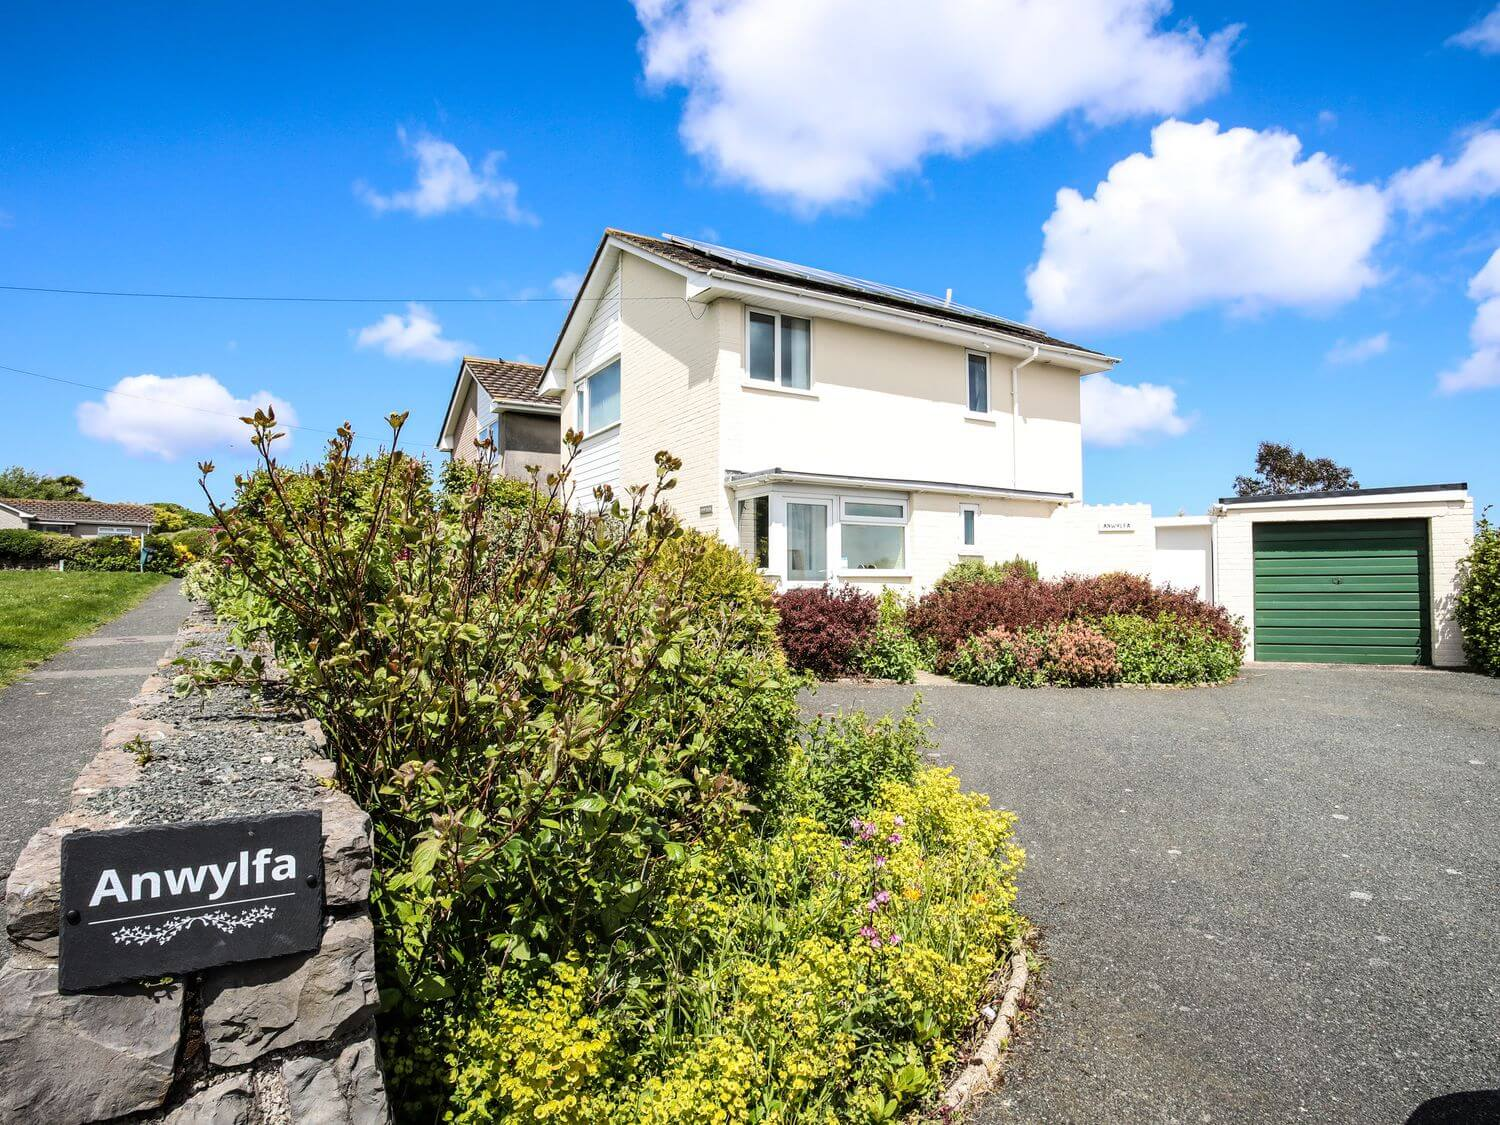 Anwylfa Holiday Cottage in Moelfre, Anglesey